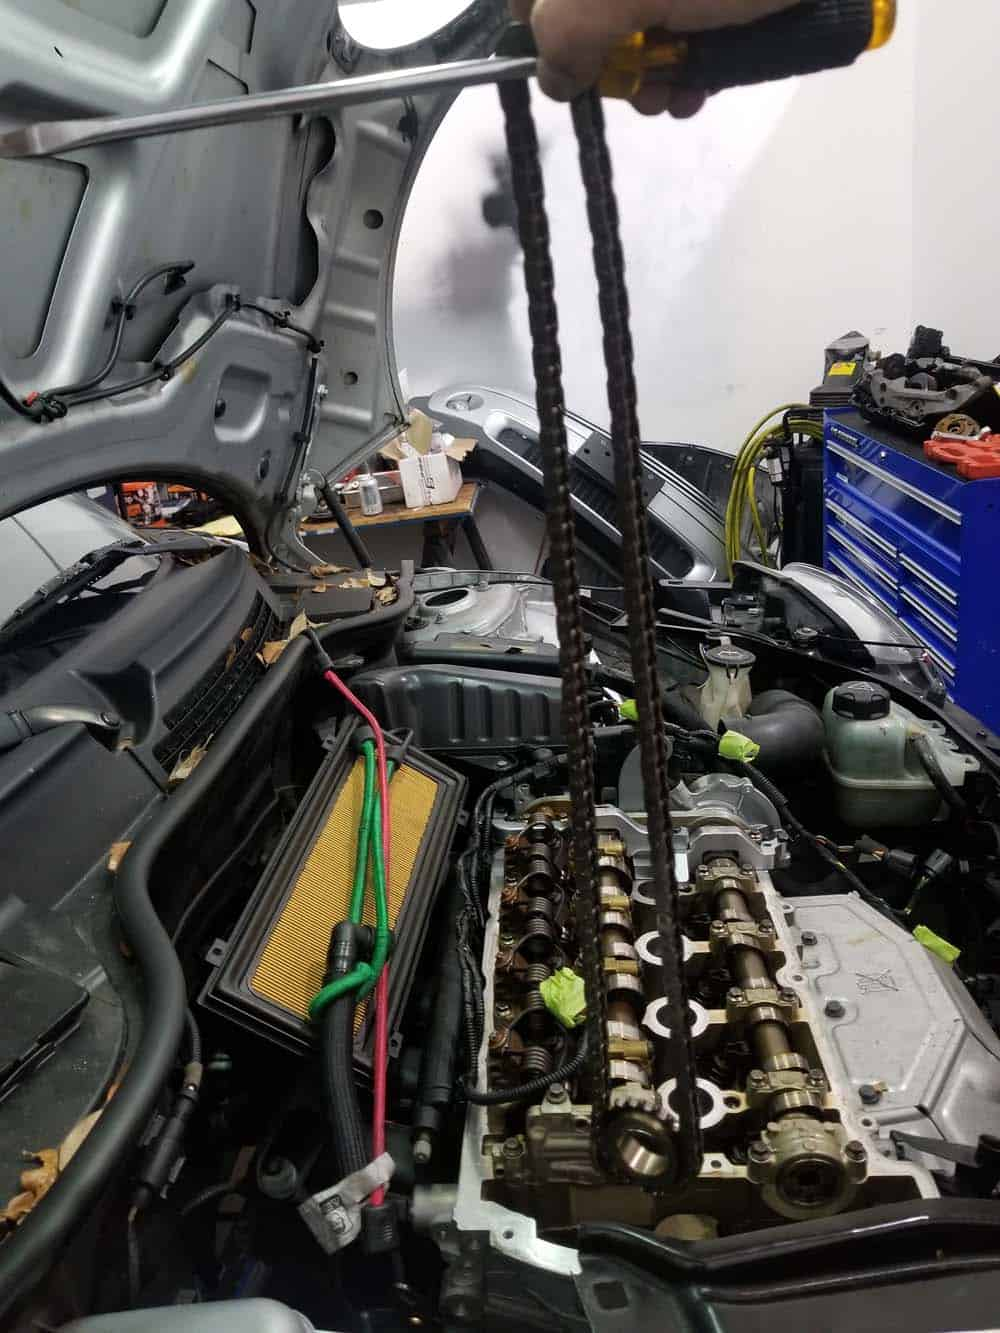 Remove the timing chain from the vehicle